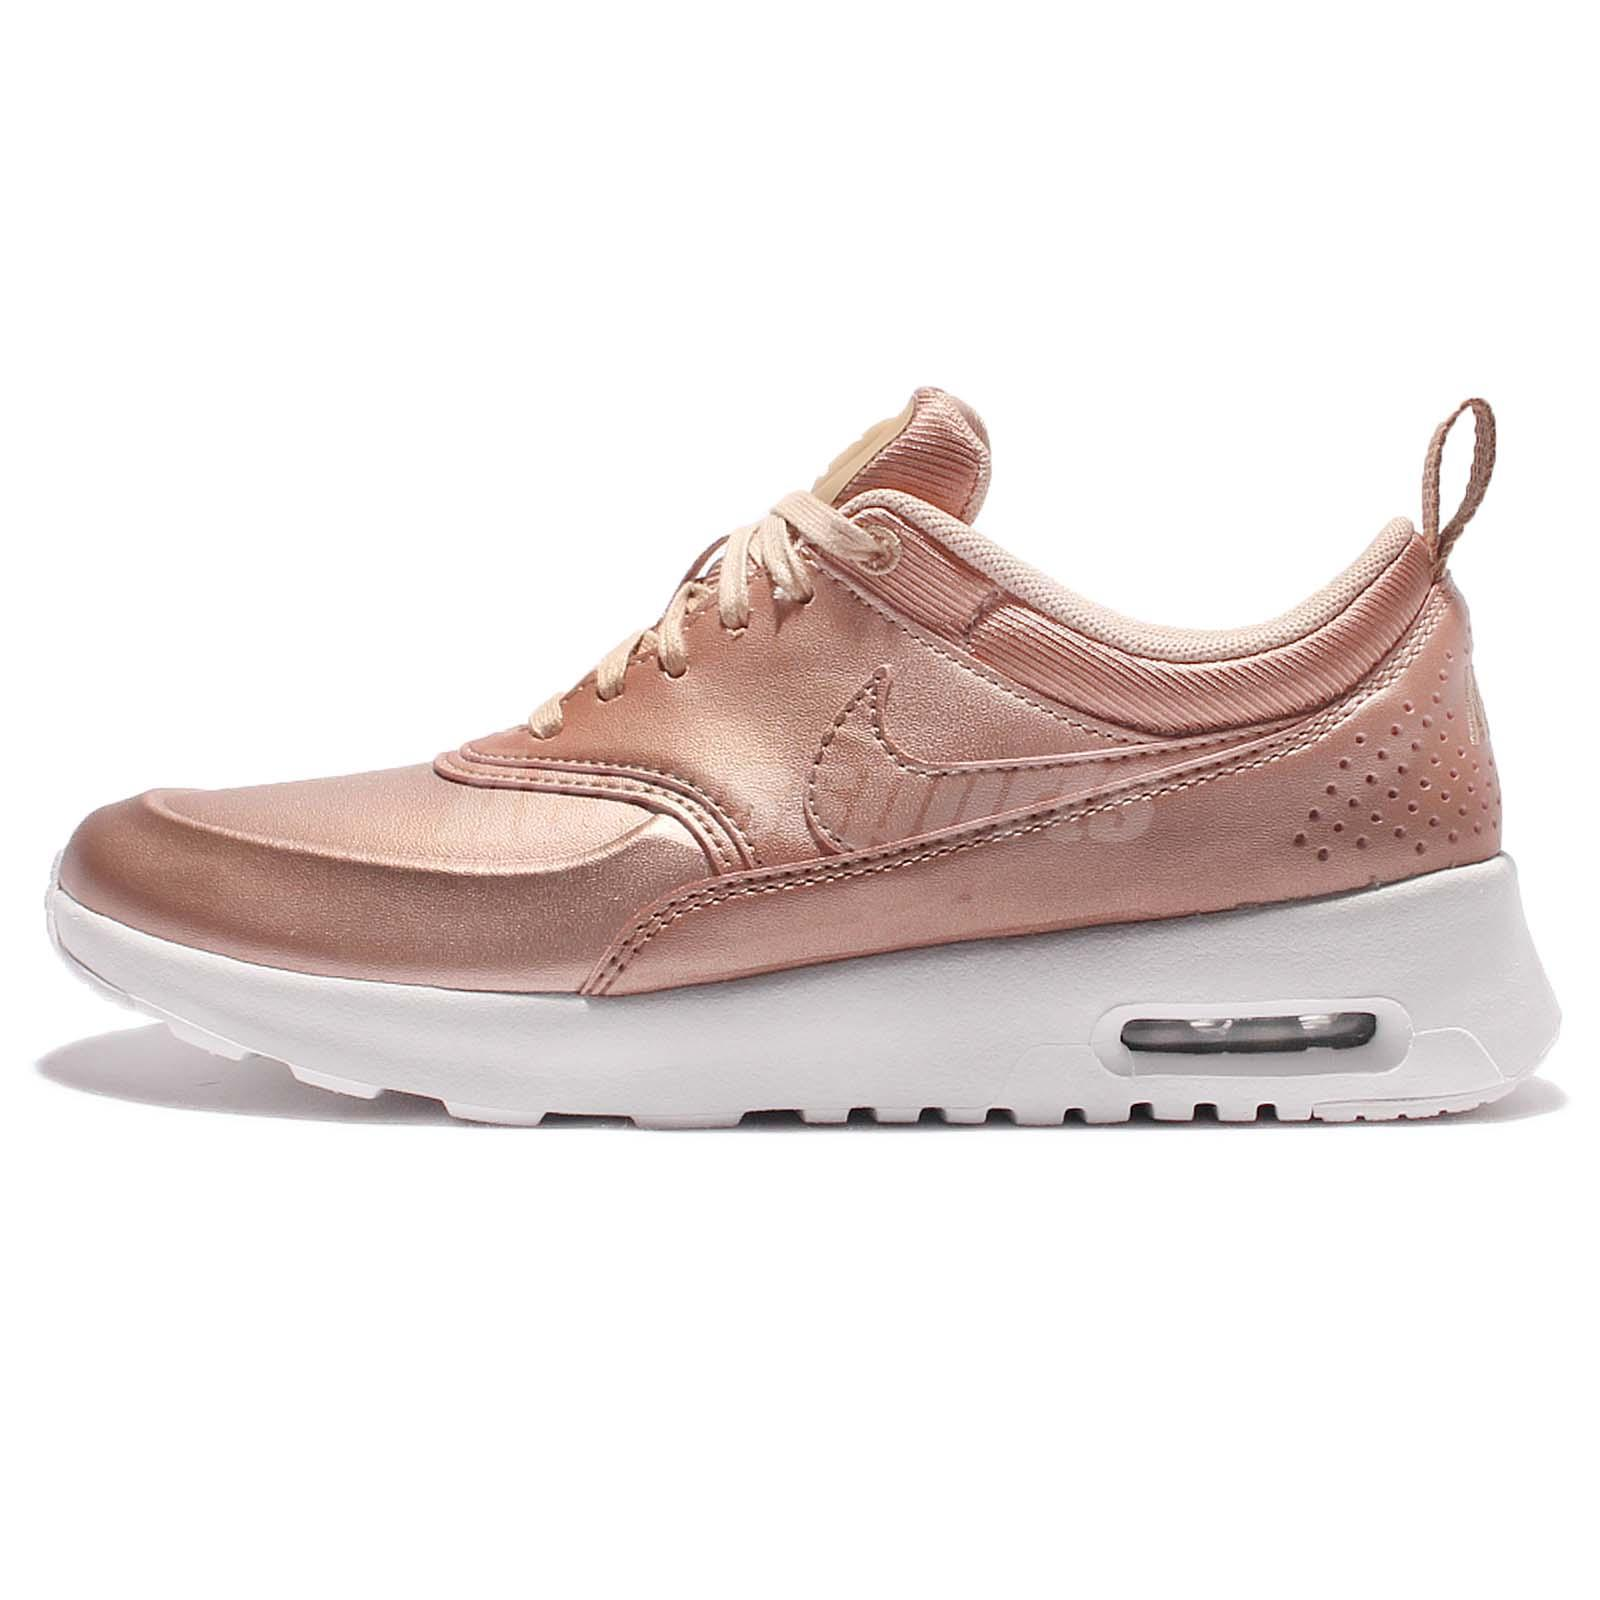 3084ebc851 Nike Air Max Thea Beige Womens extreme-hosting.co.uk